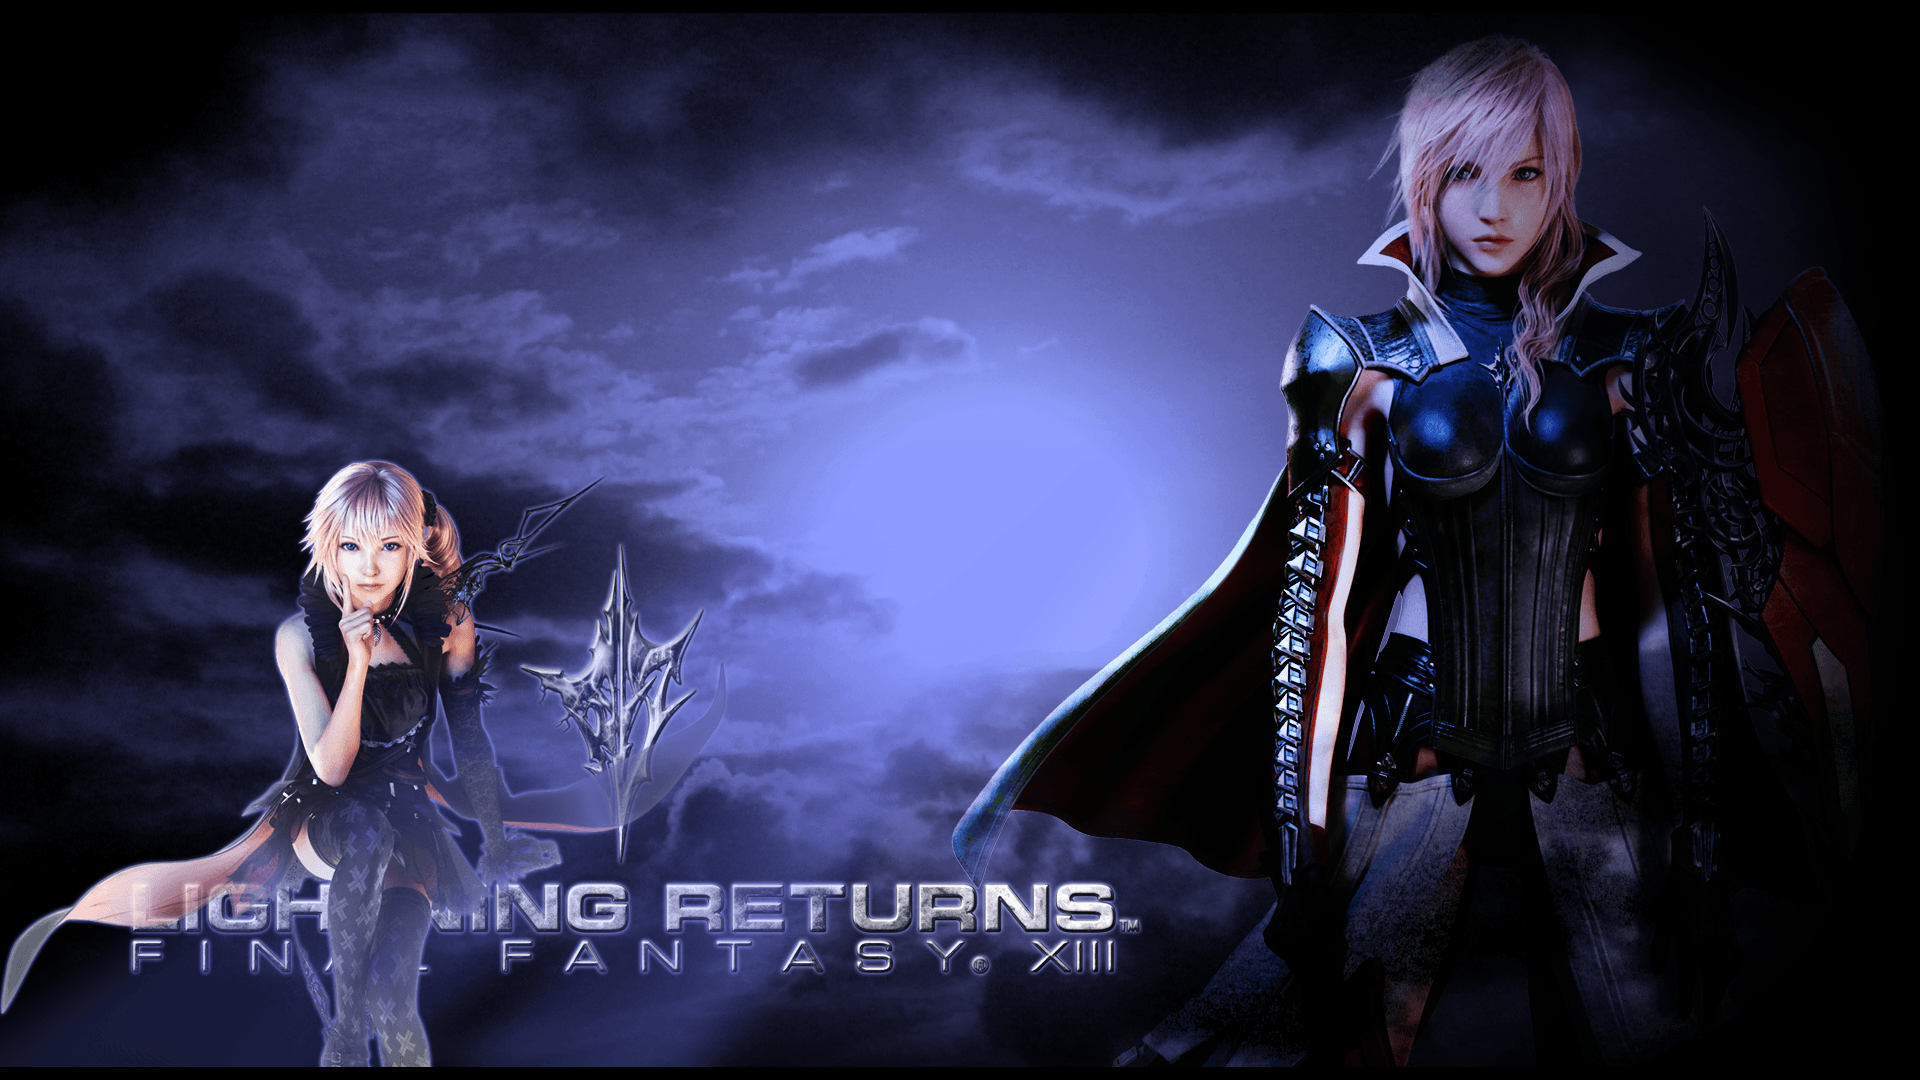 lightning returns: final fantasy xiii wallpapers - wallpaper cave